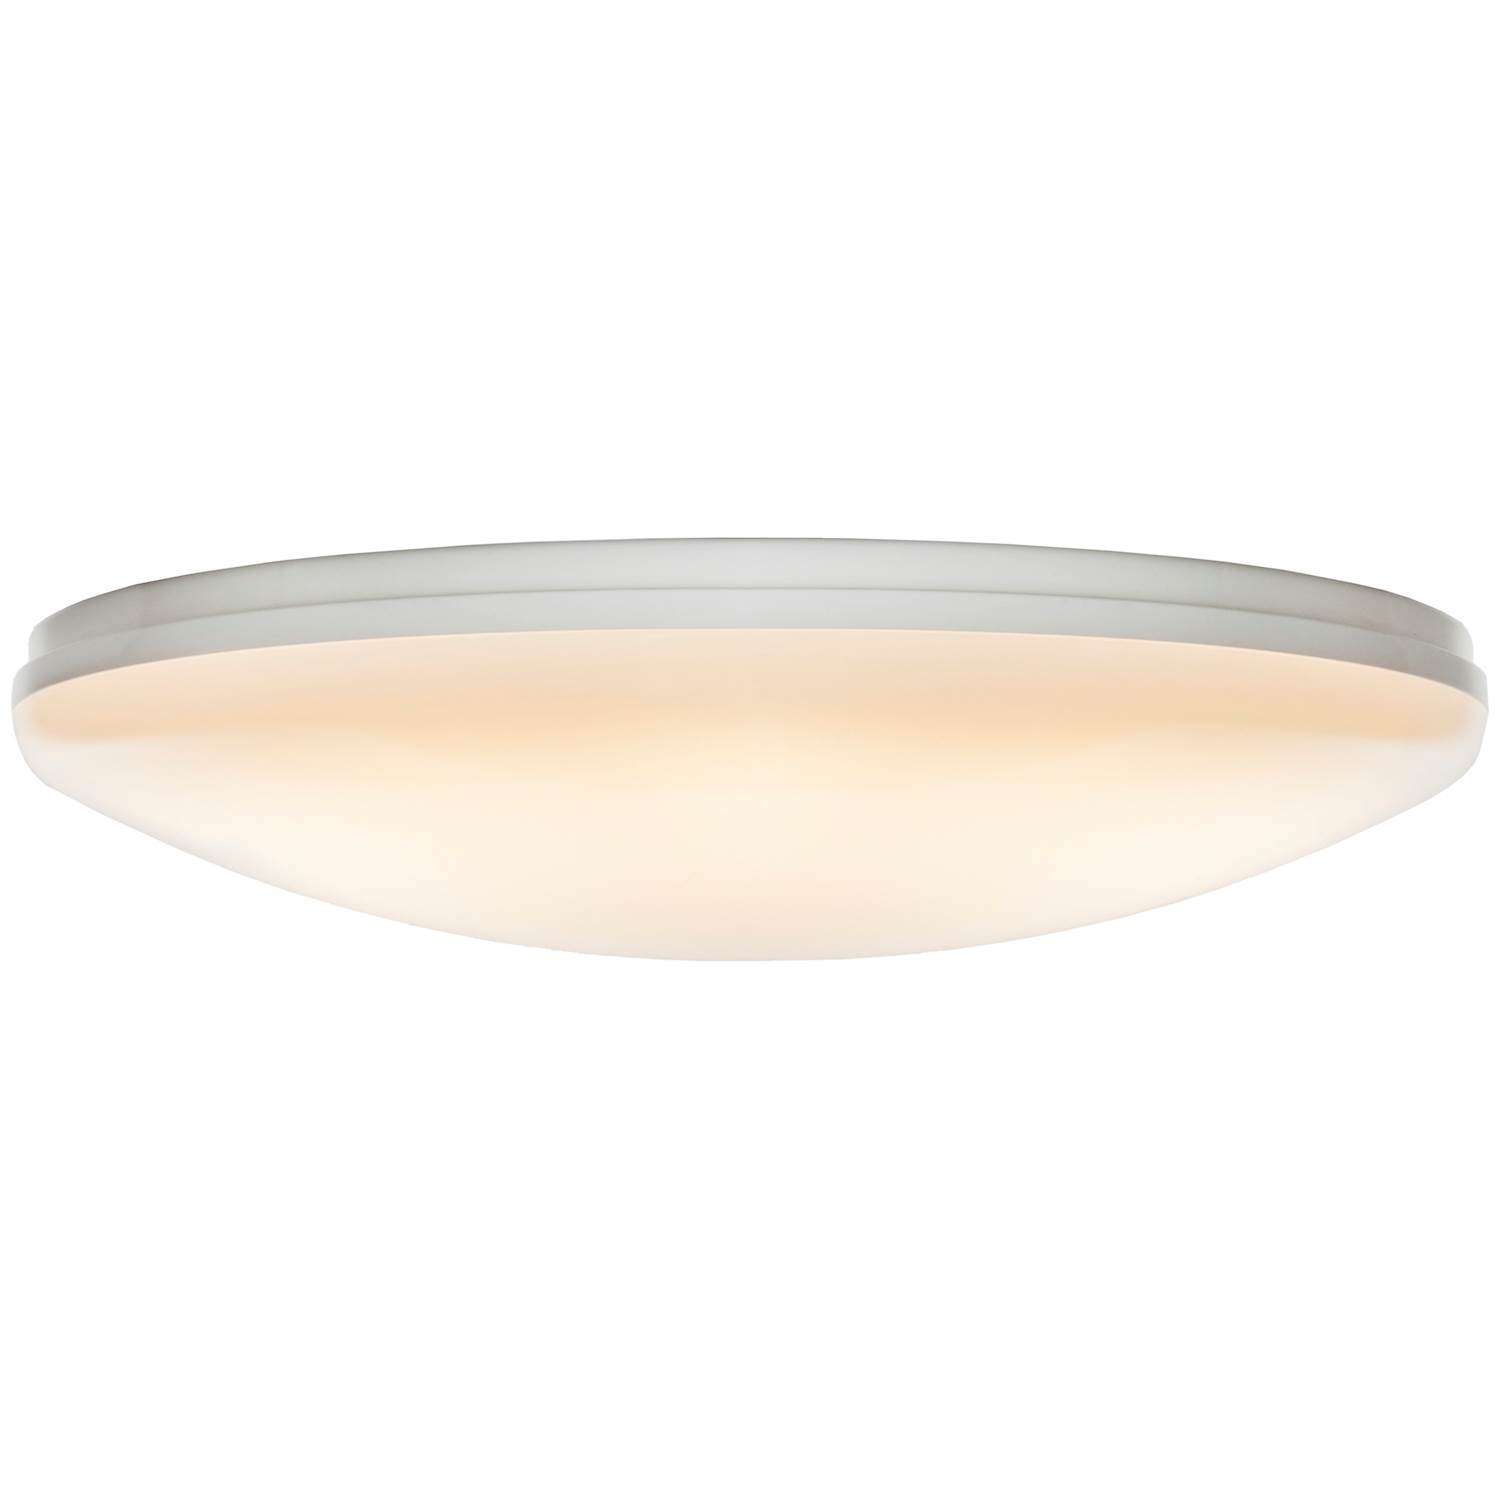 Airam Arex LED plafond Ø350mm